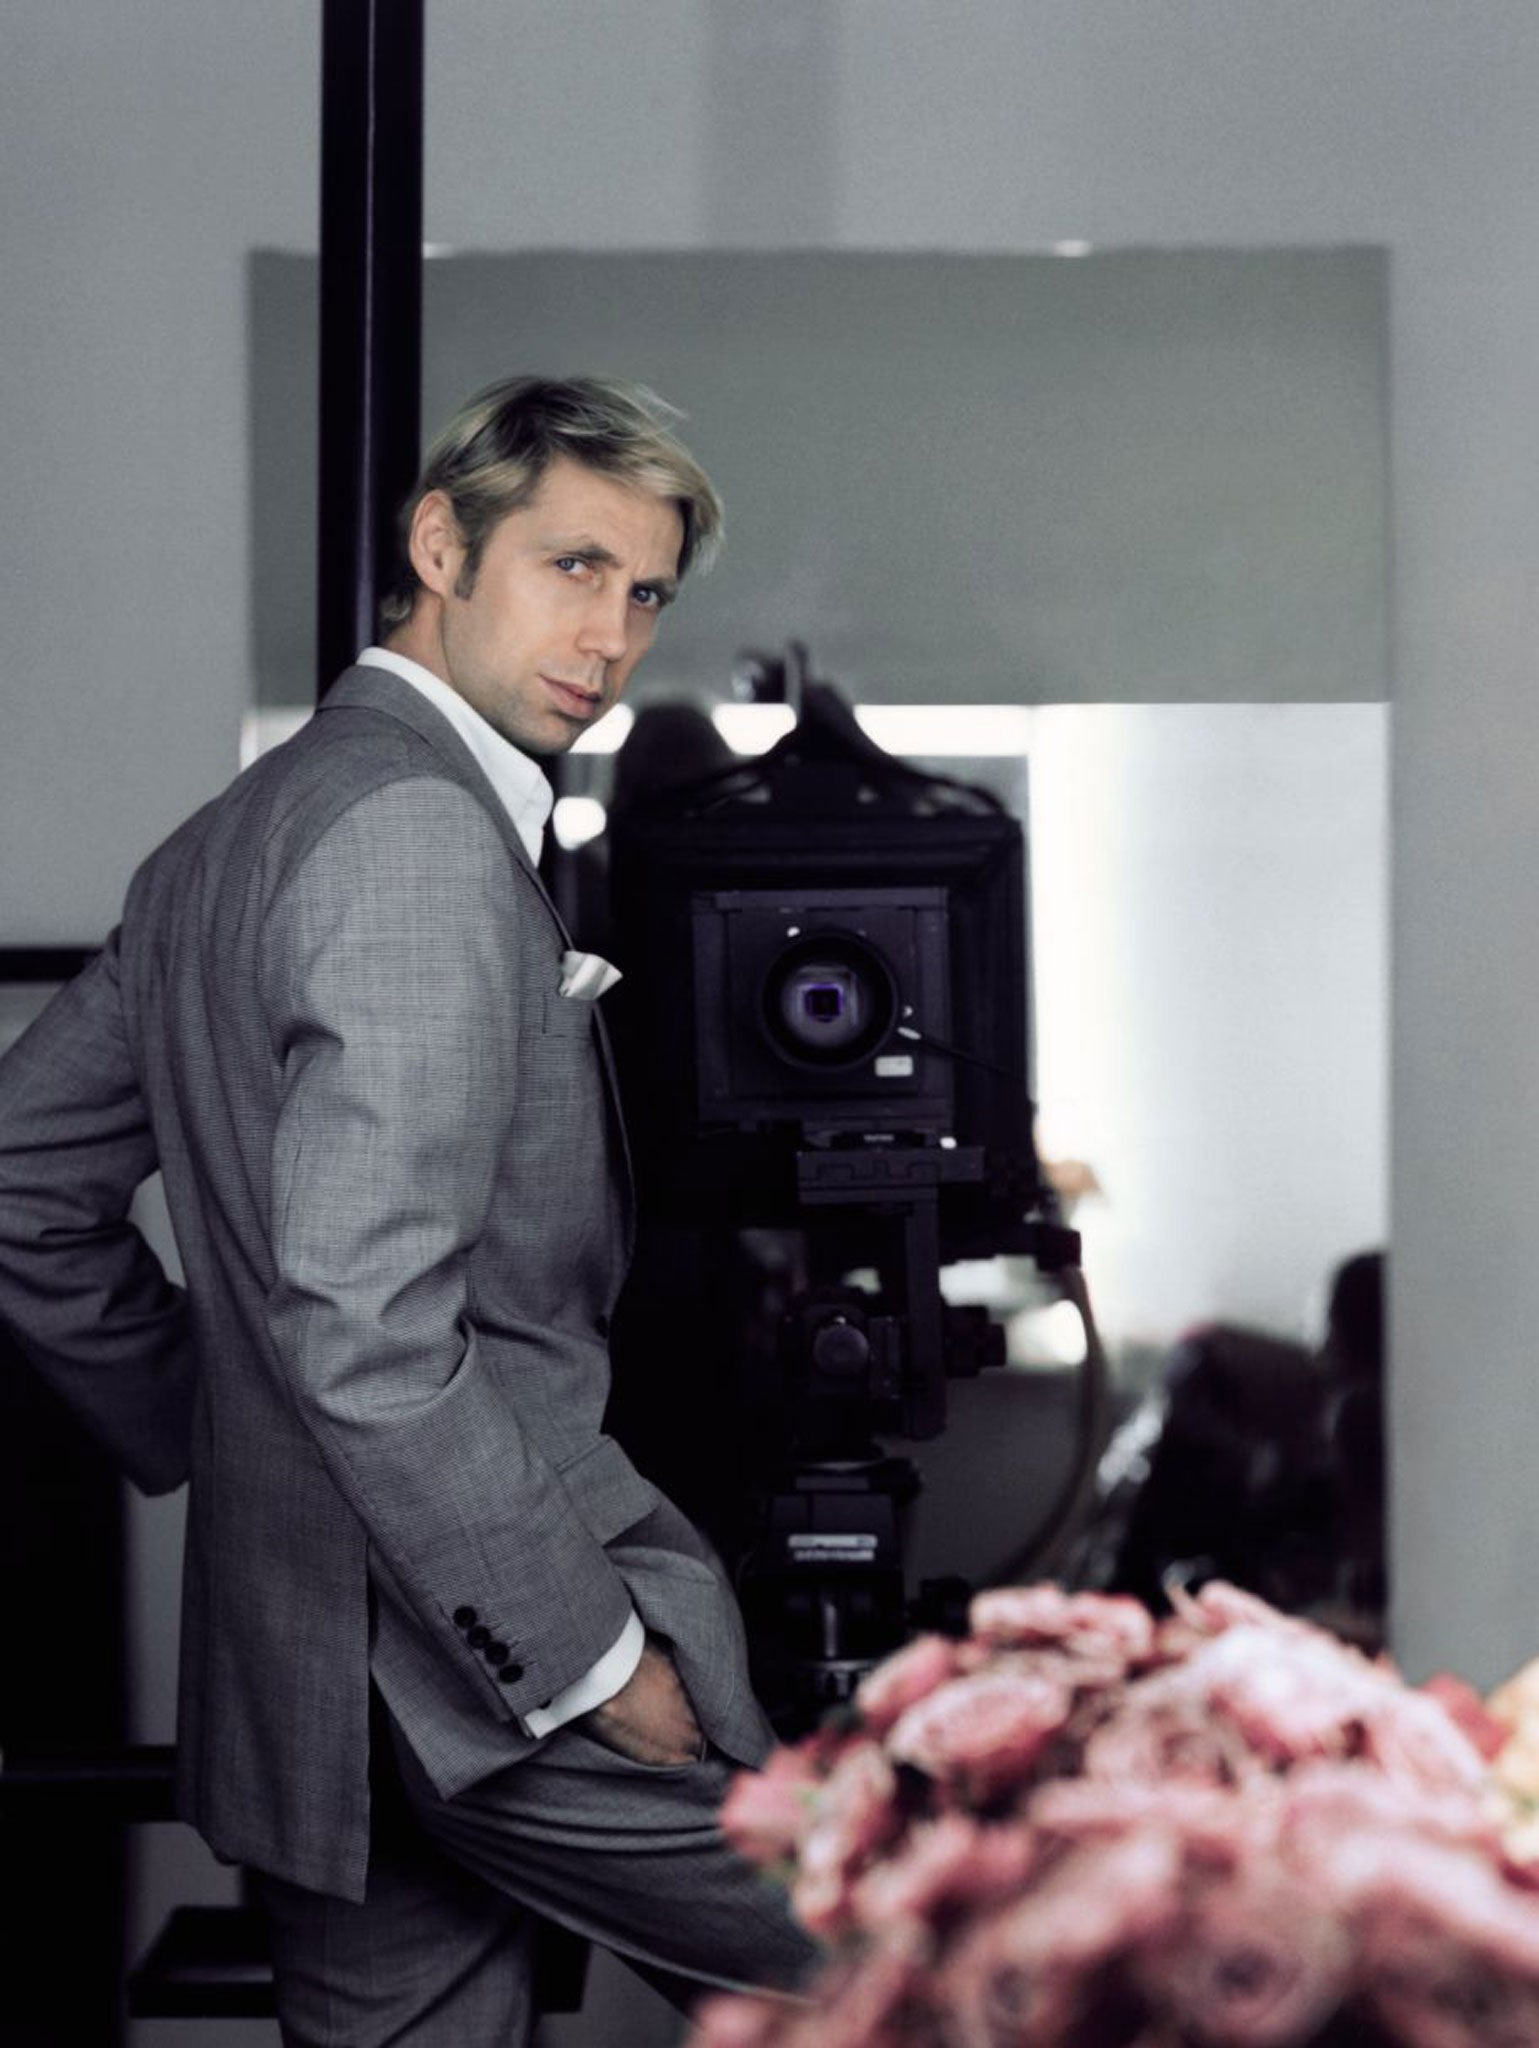 Nick Knight Interview The Photographer And Film-Maker On